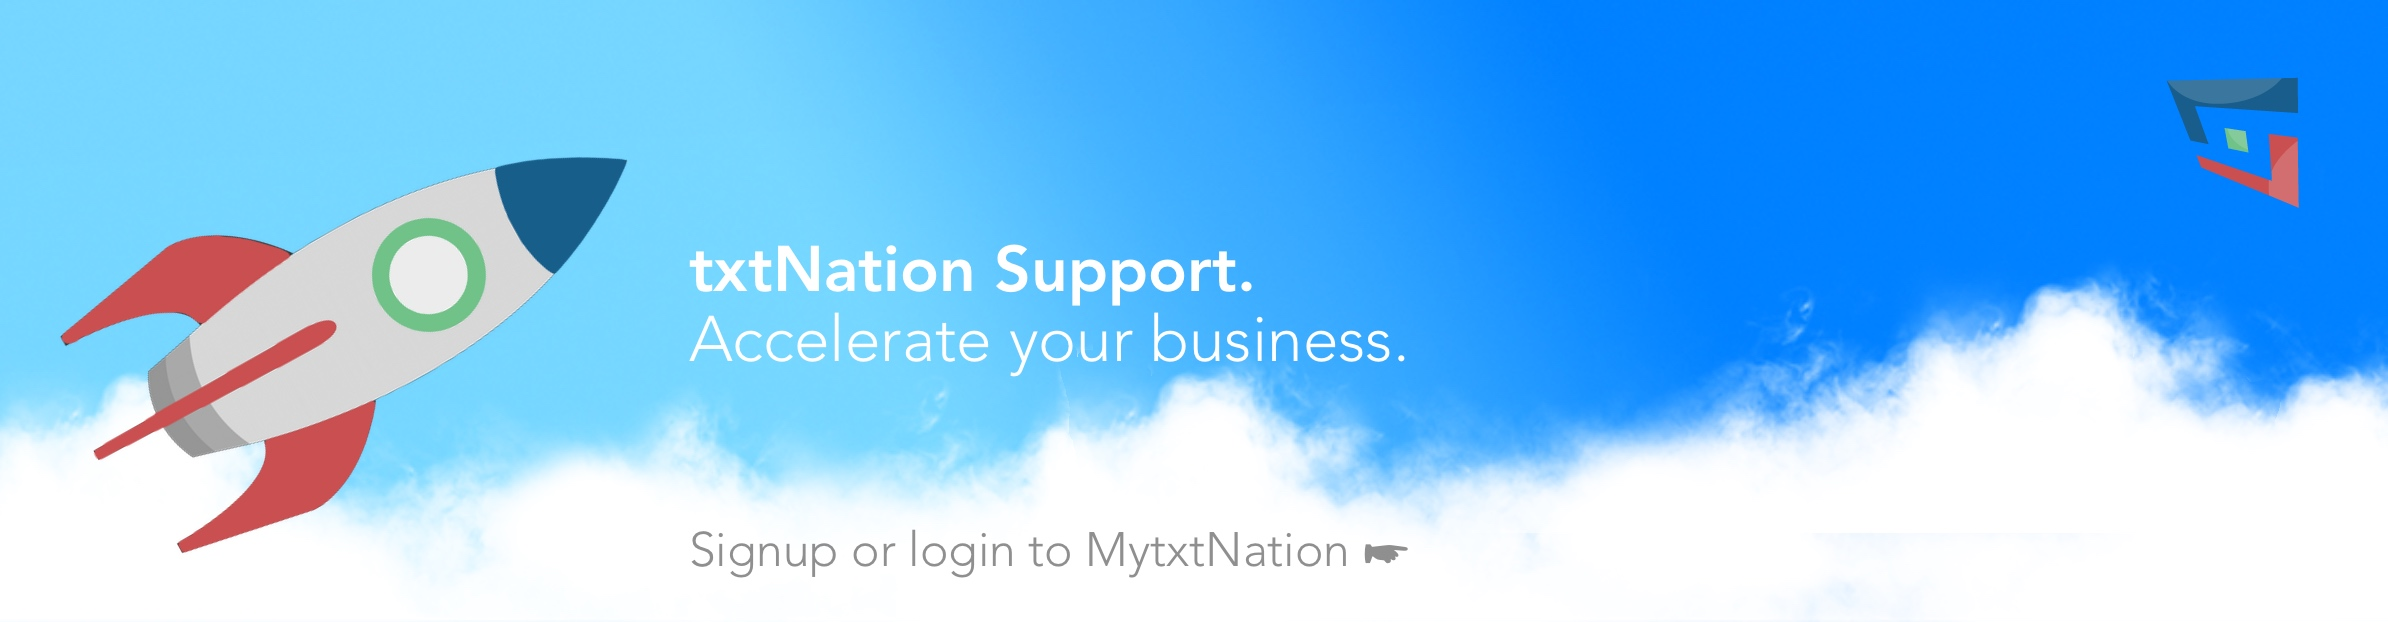 Scripts for Sending Bulk SMS – txtNation Support